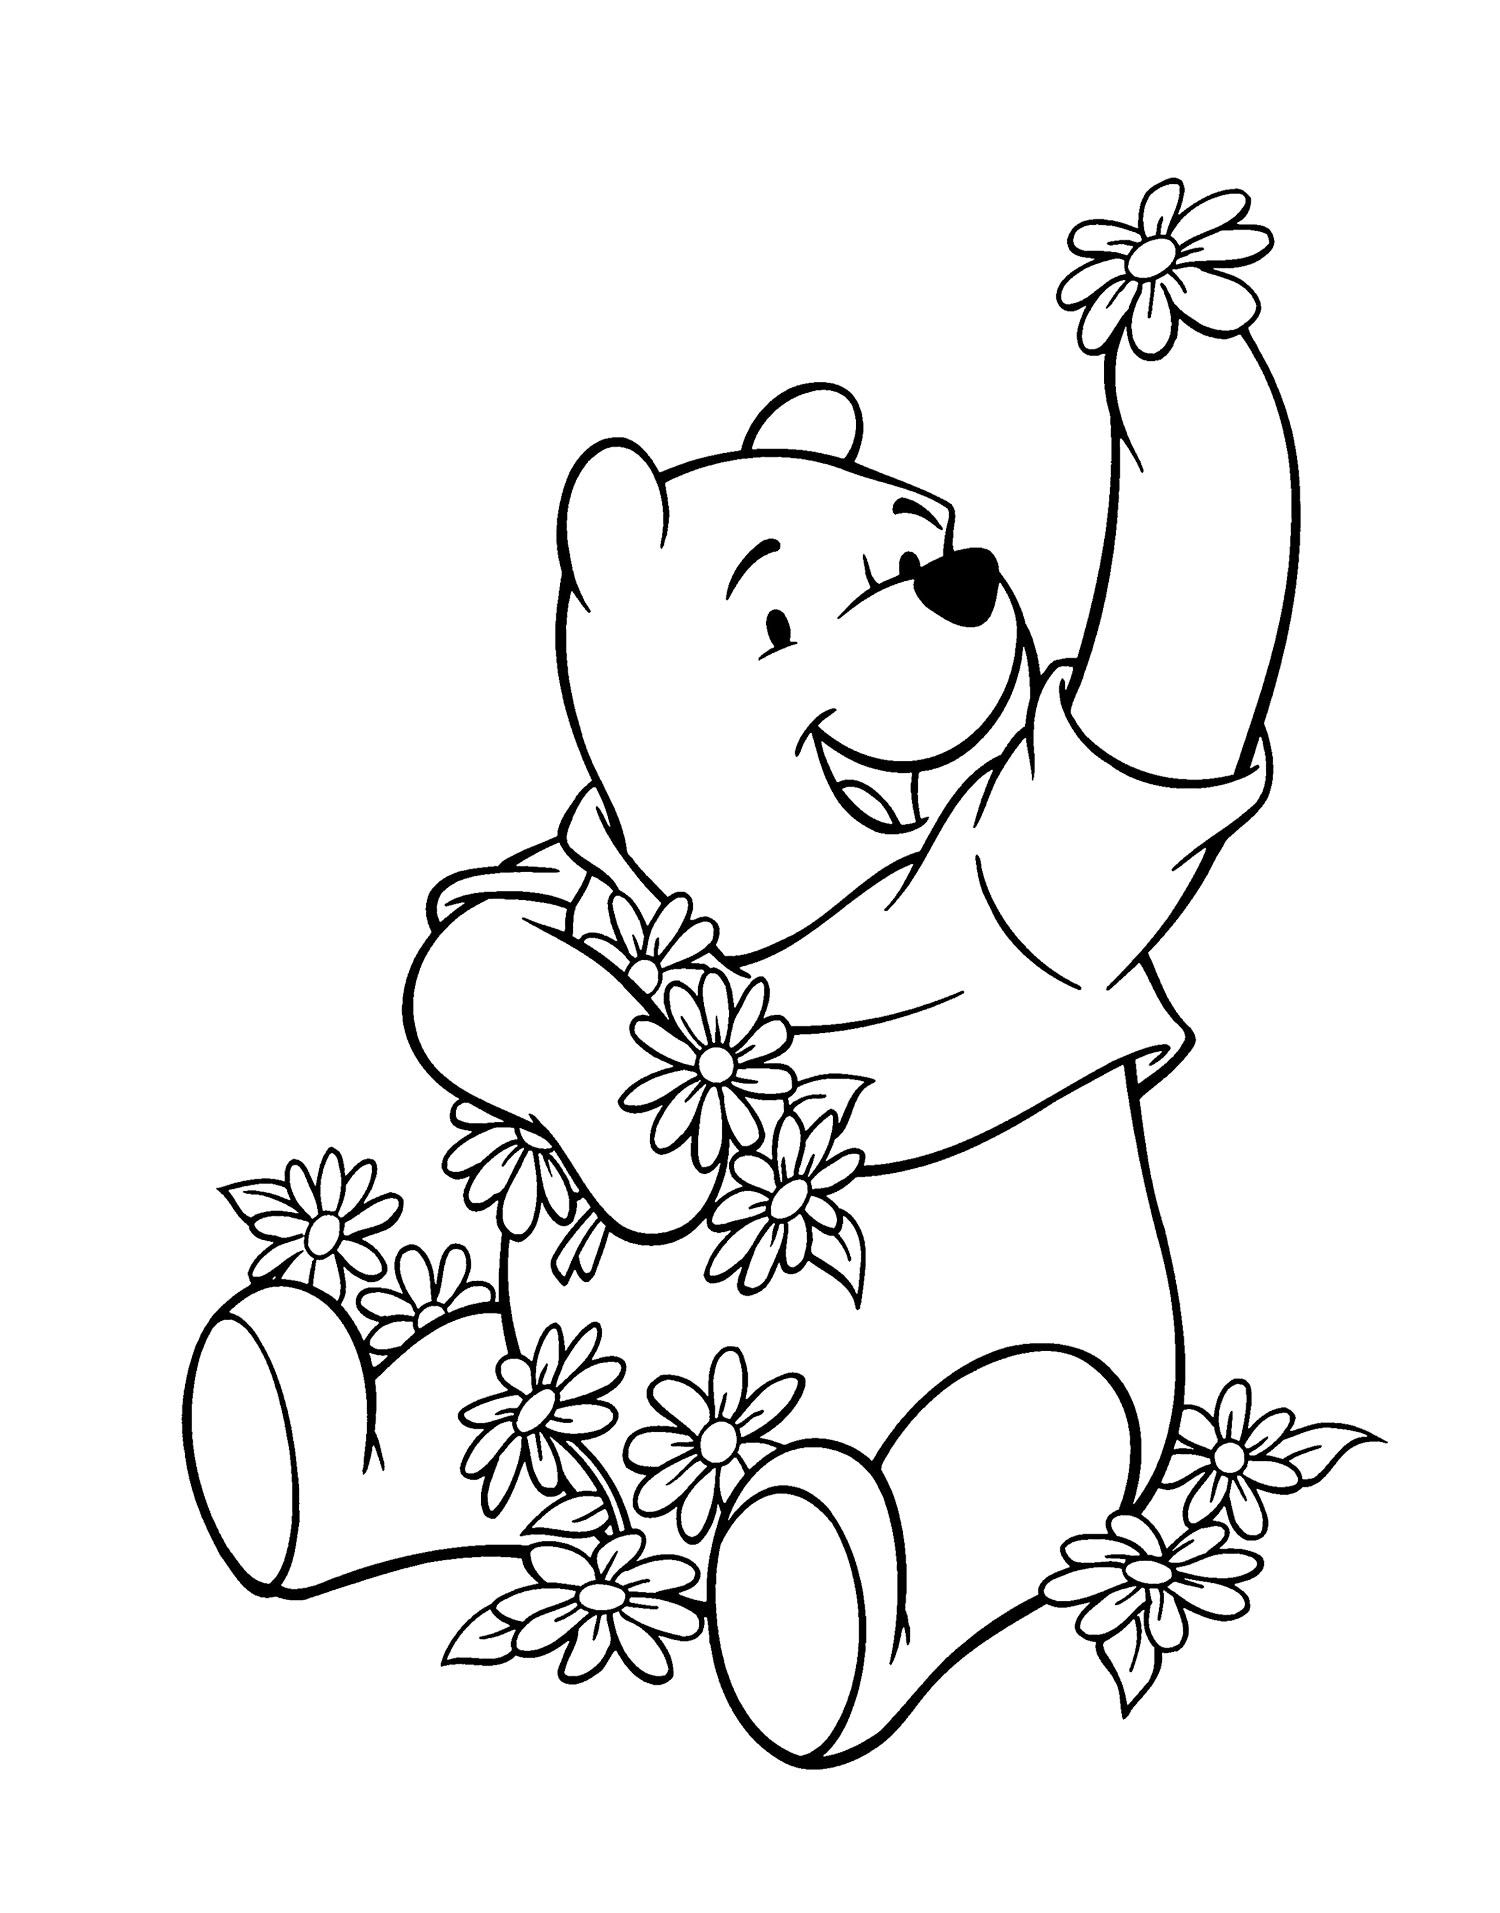 1500x1913 Winnie Pooh And Many Flowers Coloring Page Winnie